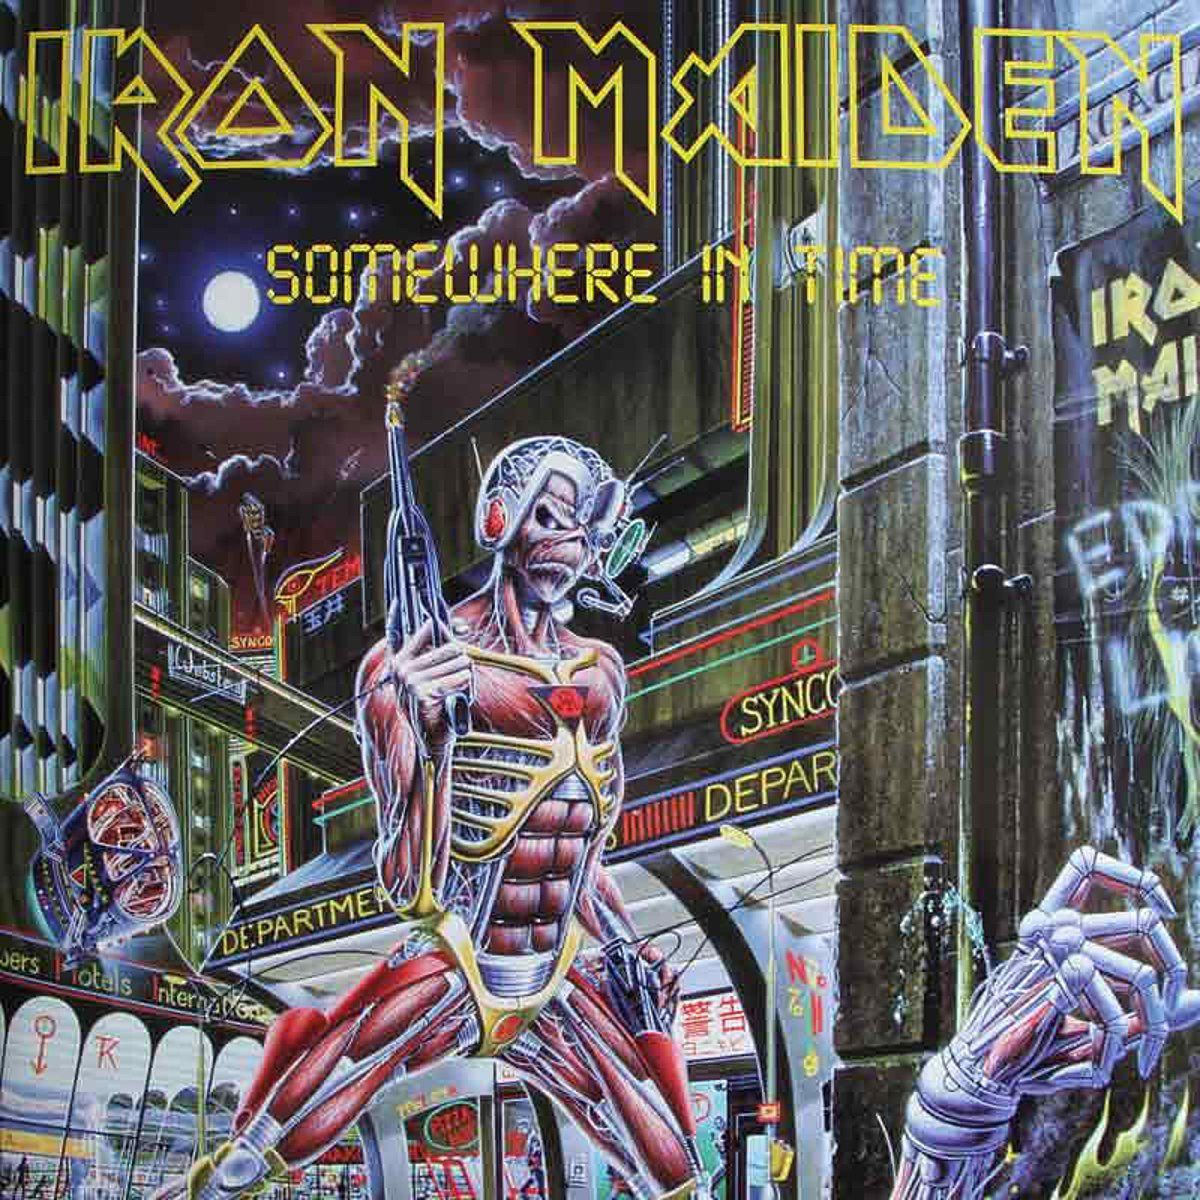 Iron Maiden's Somewhere in Time album cover